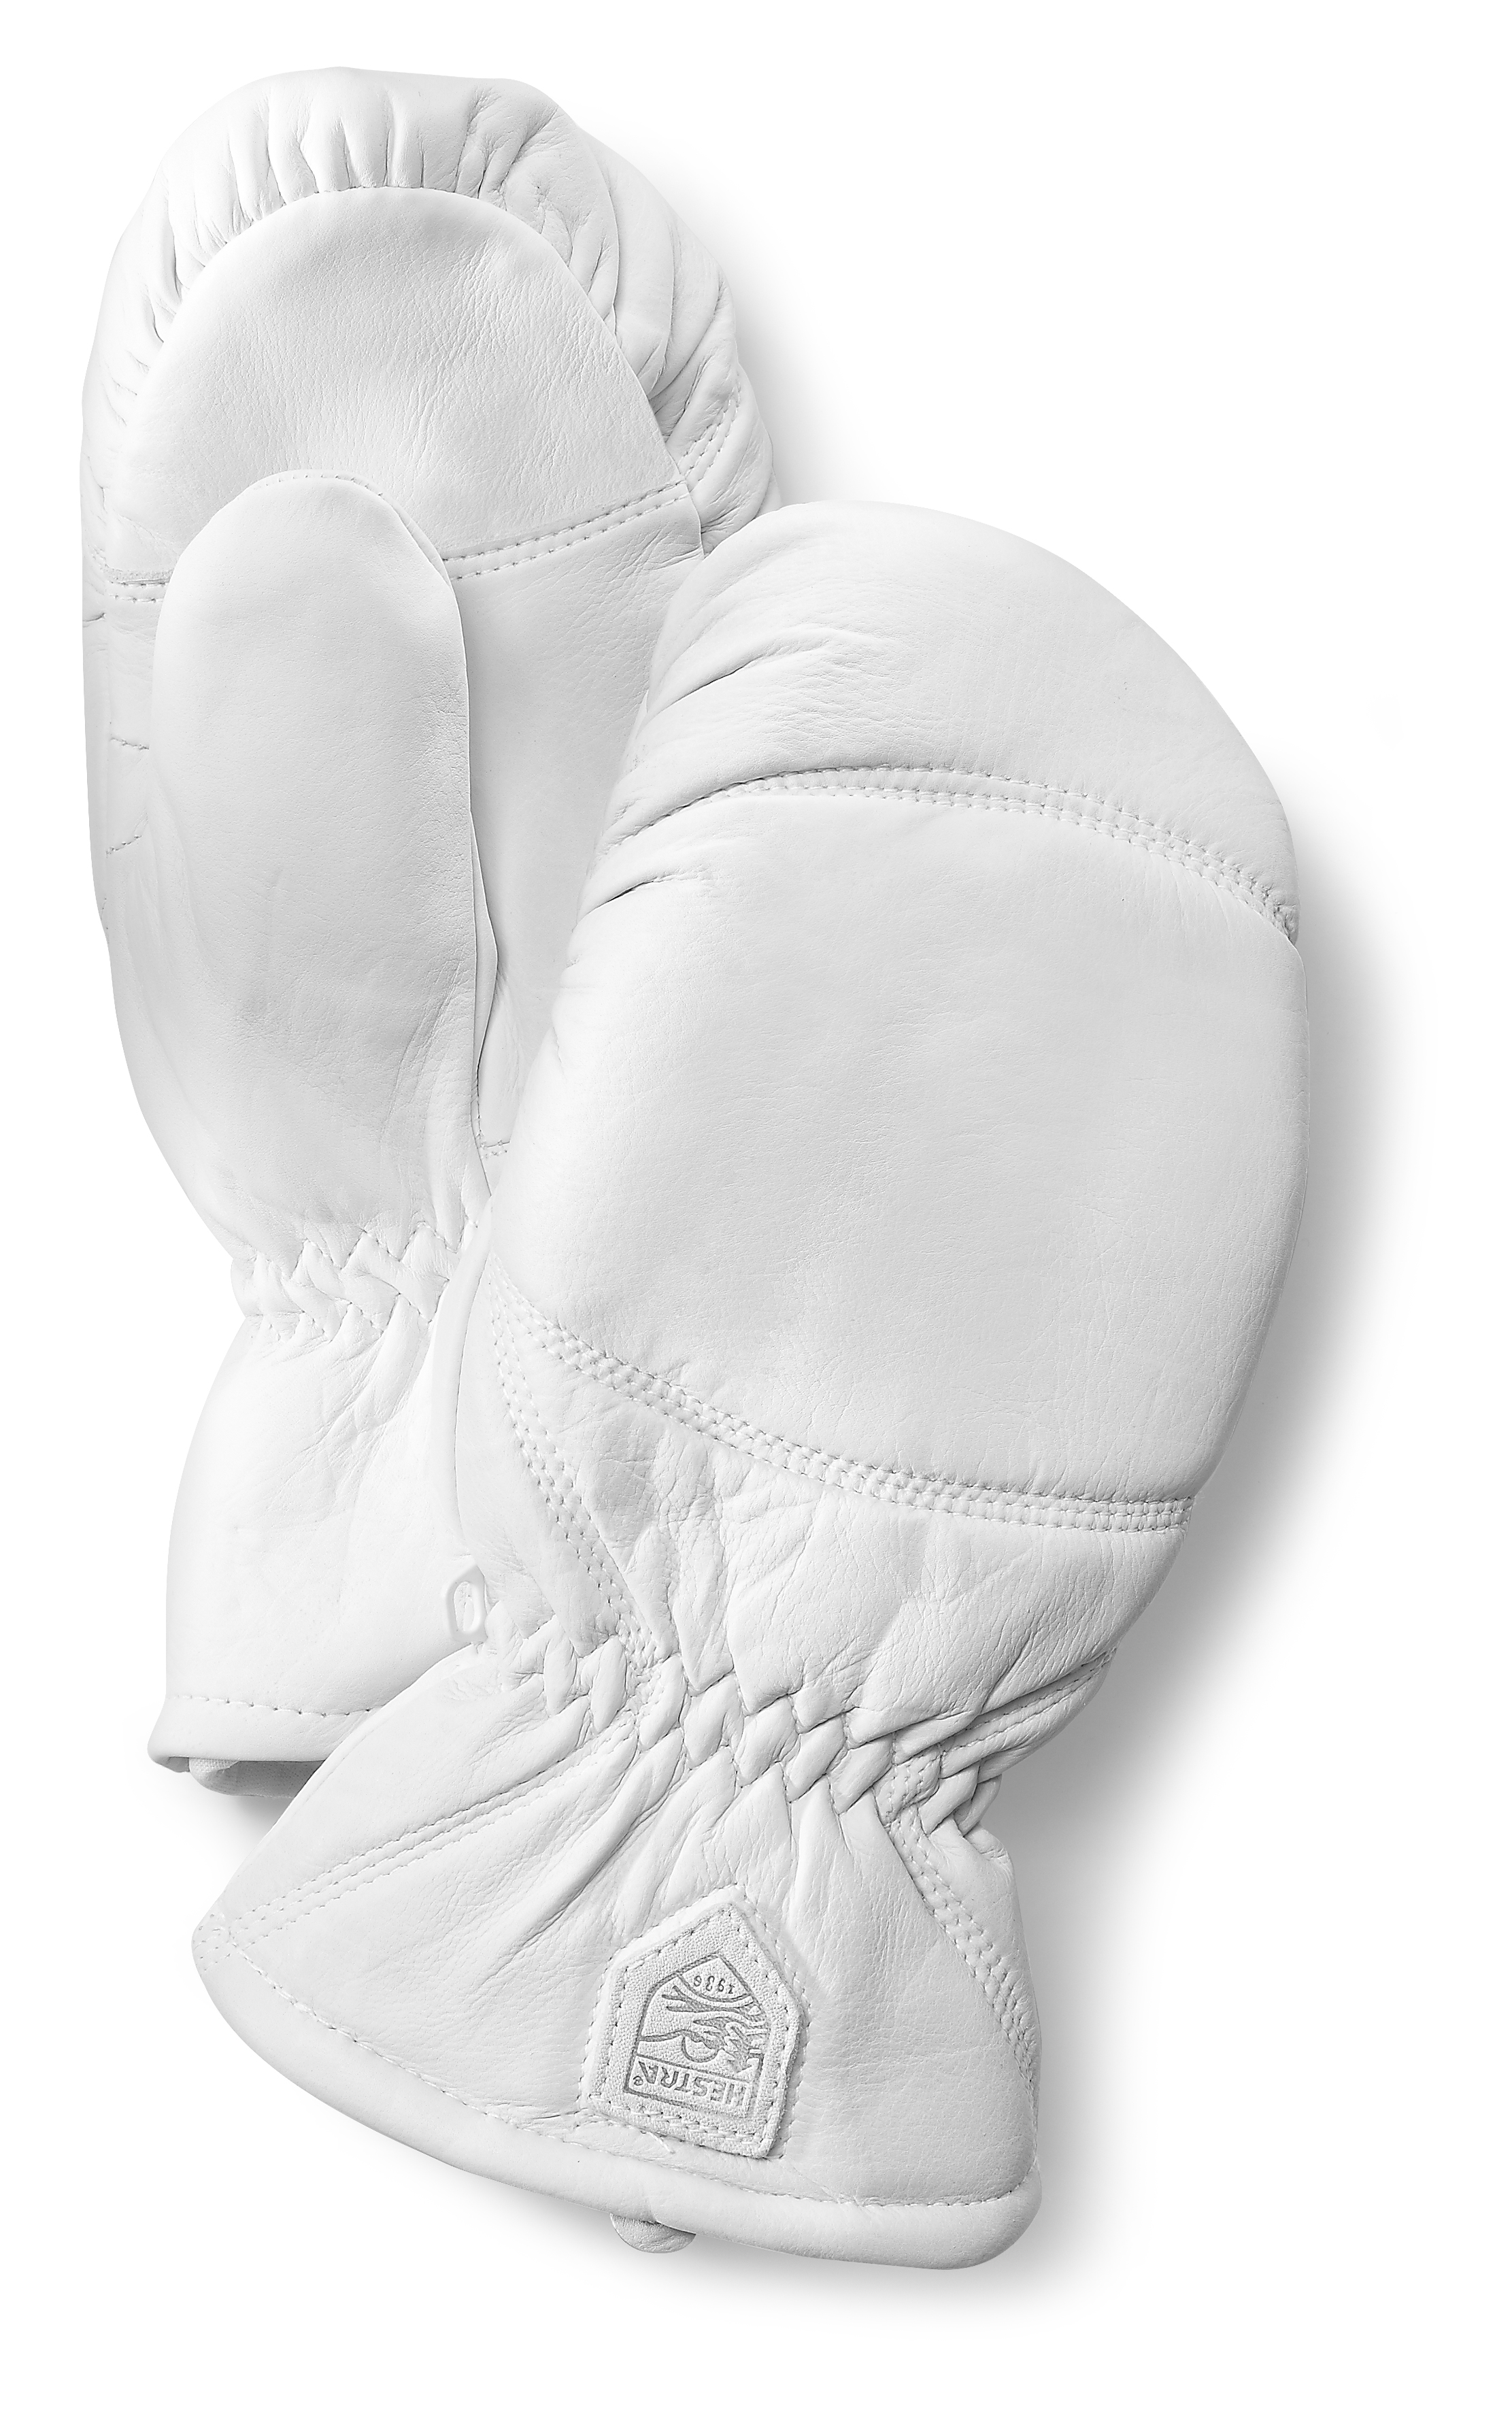 Ski mittens Hestra Leather Box made of leather